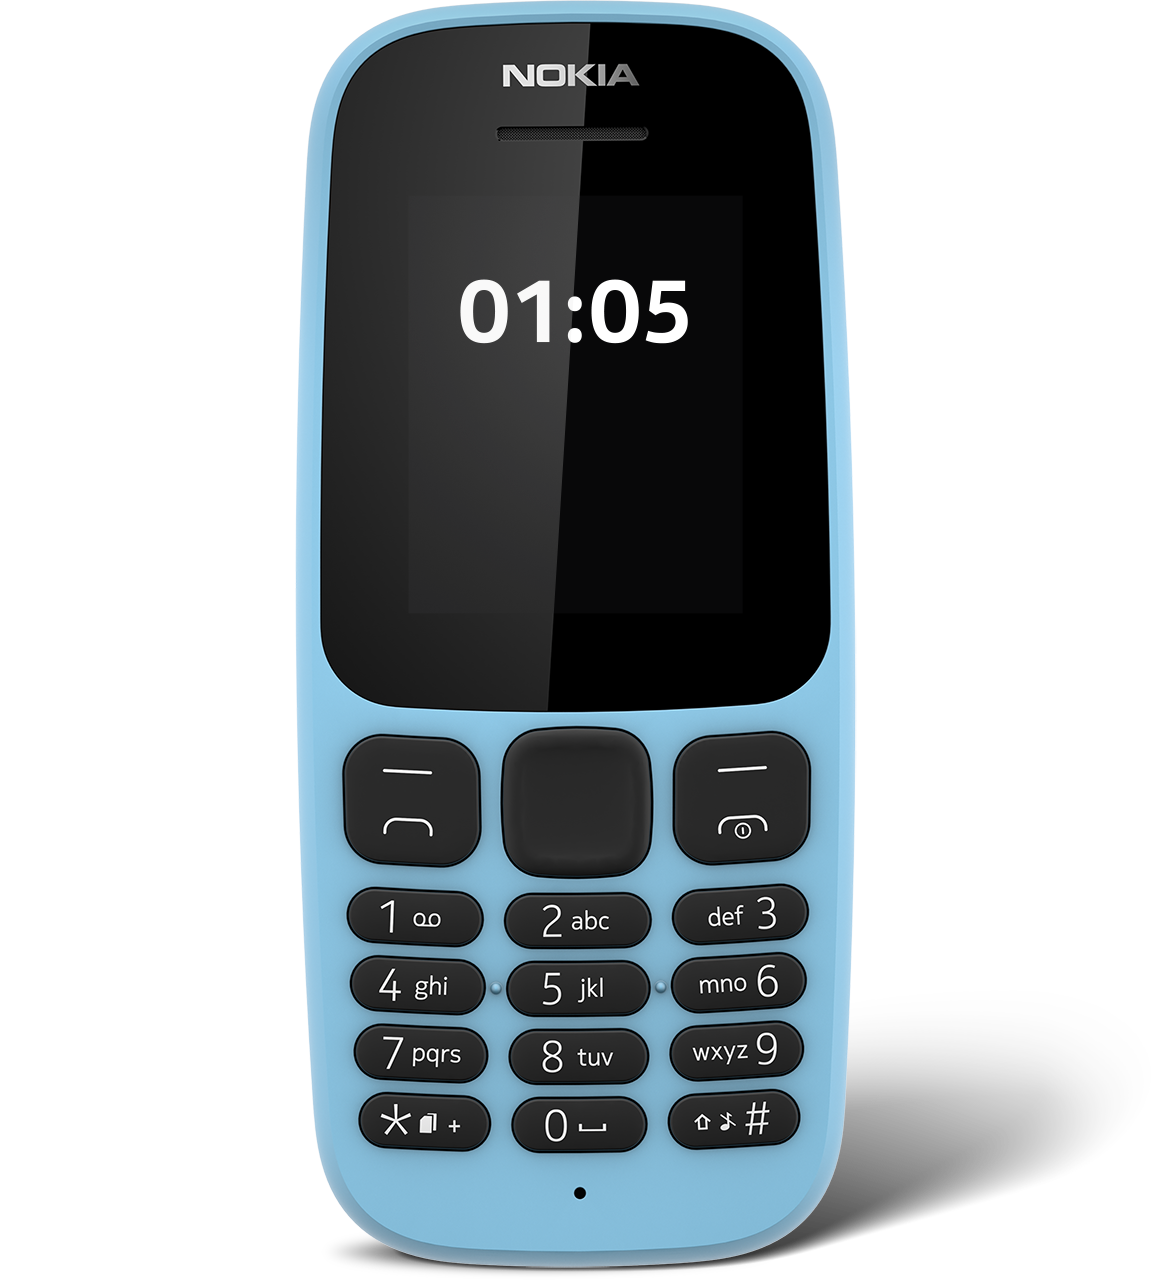 nokia 105 sim free mobile phone 2017 edition black ebay. Black Bedroom Furniture Sets. Home Design Ideas